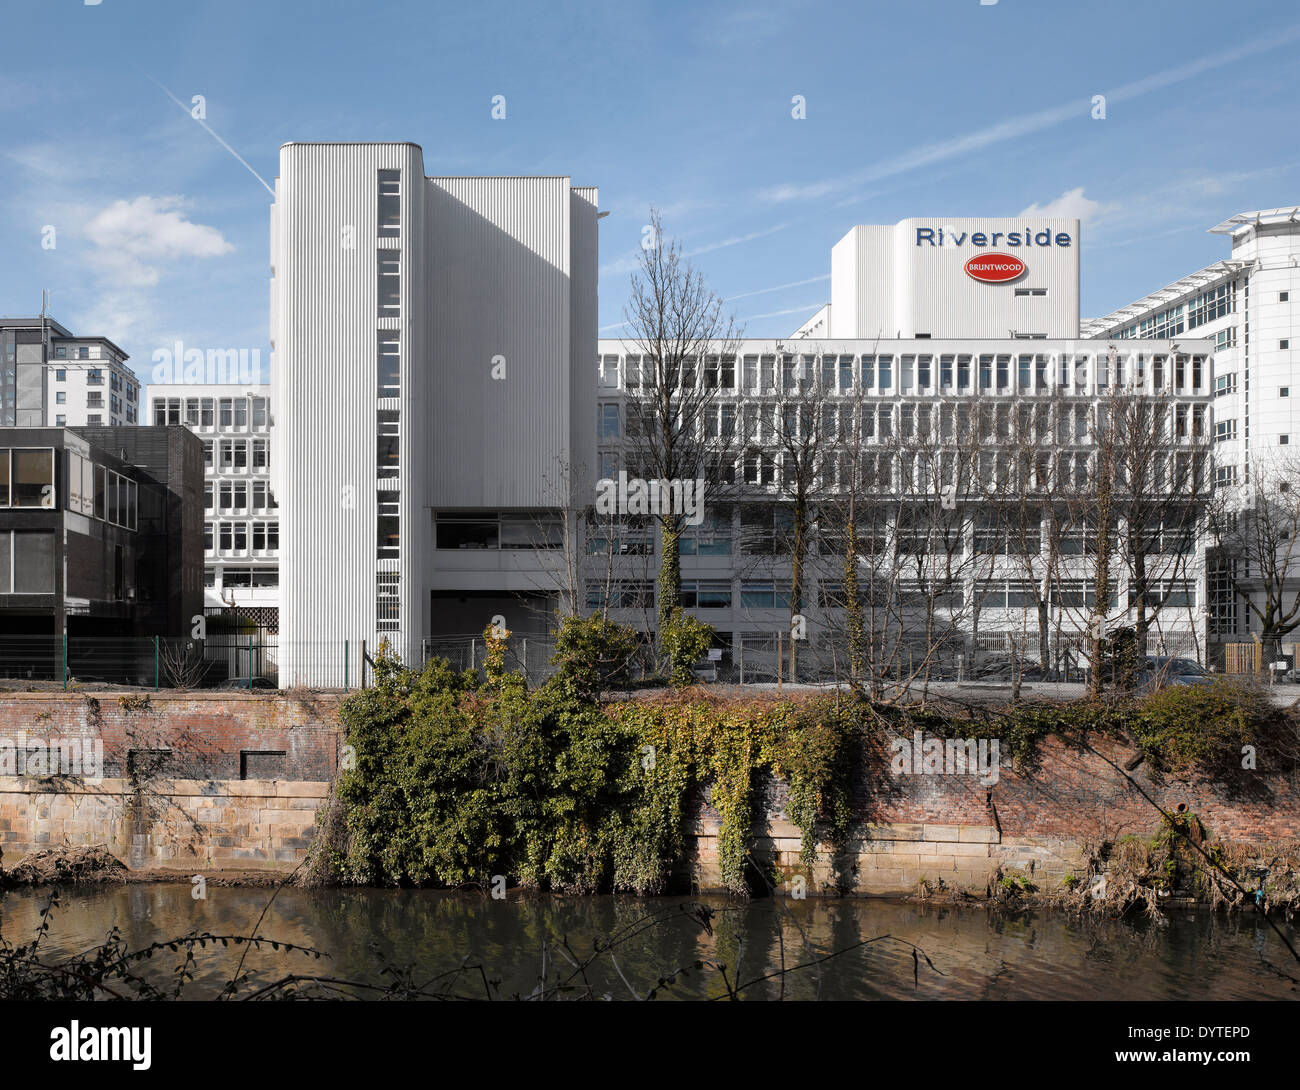 Exterior of commercial building, Riverside, Manchester, Greater Manchester - Stock Image